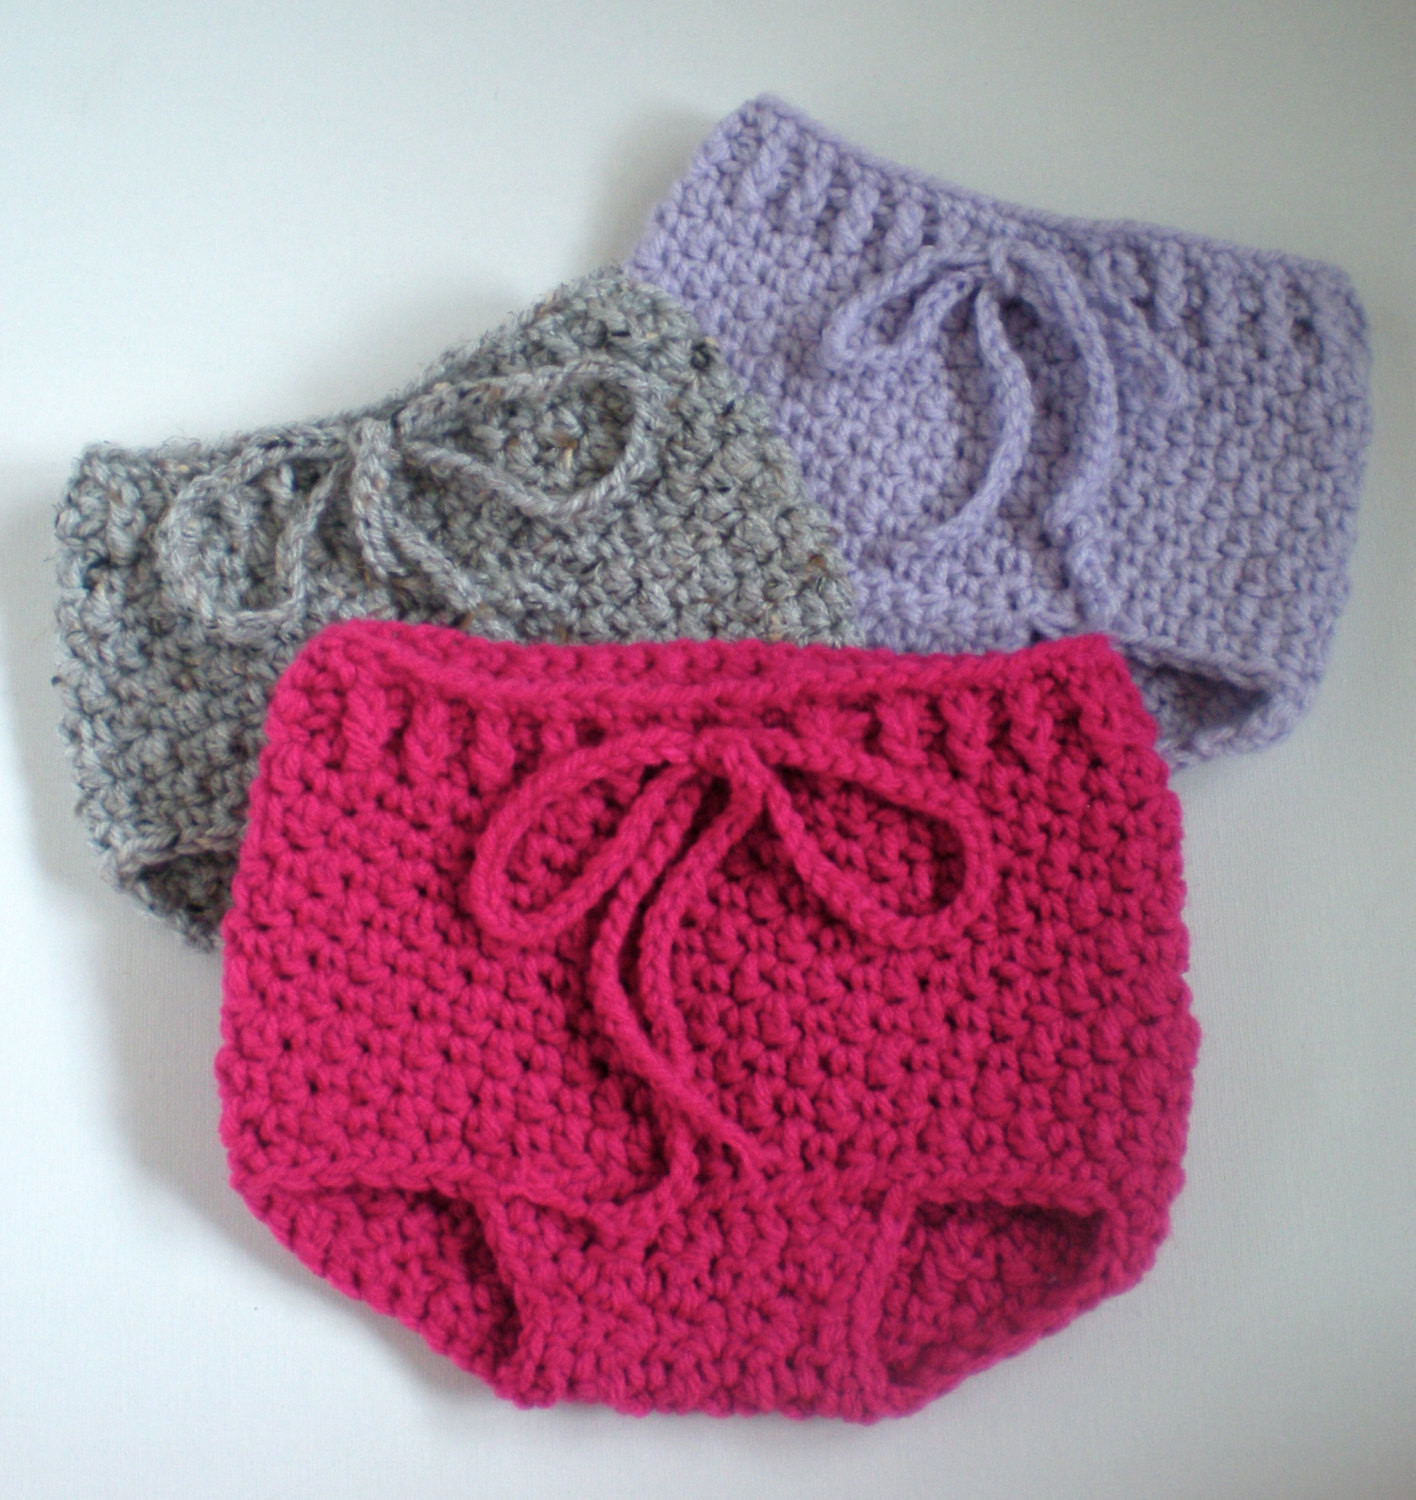 Crochet Diaper Cover Luxury Pattern Bloomers 3 Sizes Baby Girl Diaper Cover Pants Of Top 48 Ideas Crochet Diaper Cover